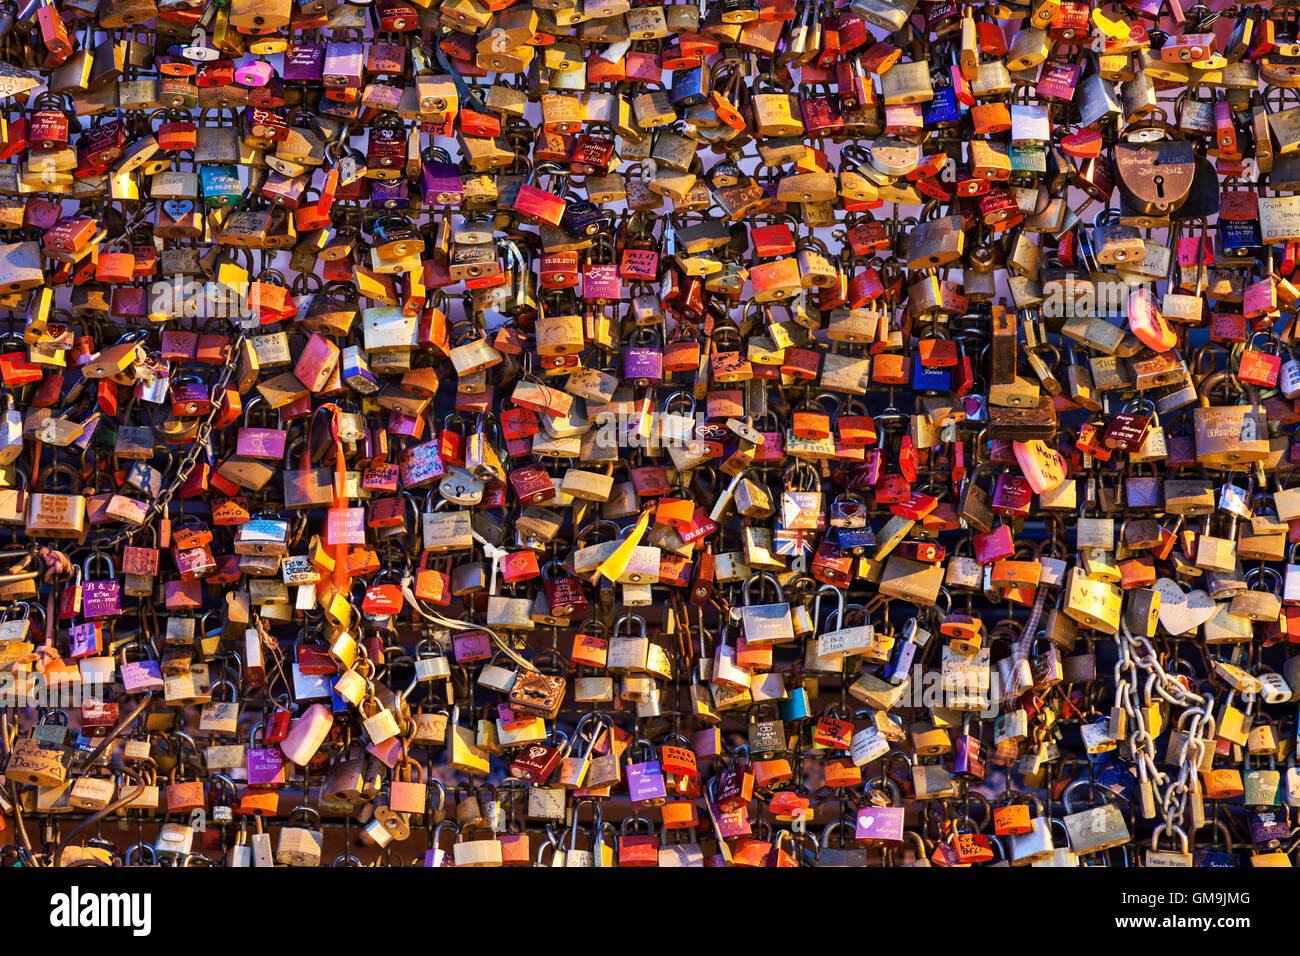 Germany, North Rhine-Westphalia, Cologne, Love padlocks on Hohenzollern Bridge - Stock Image